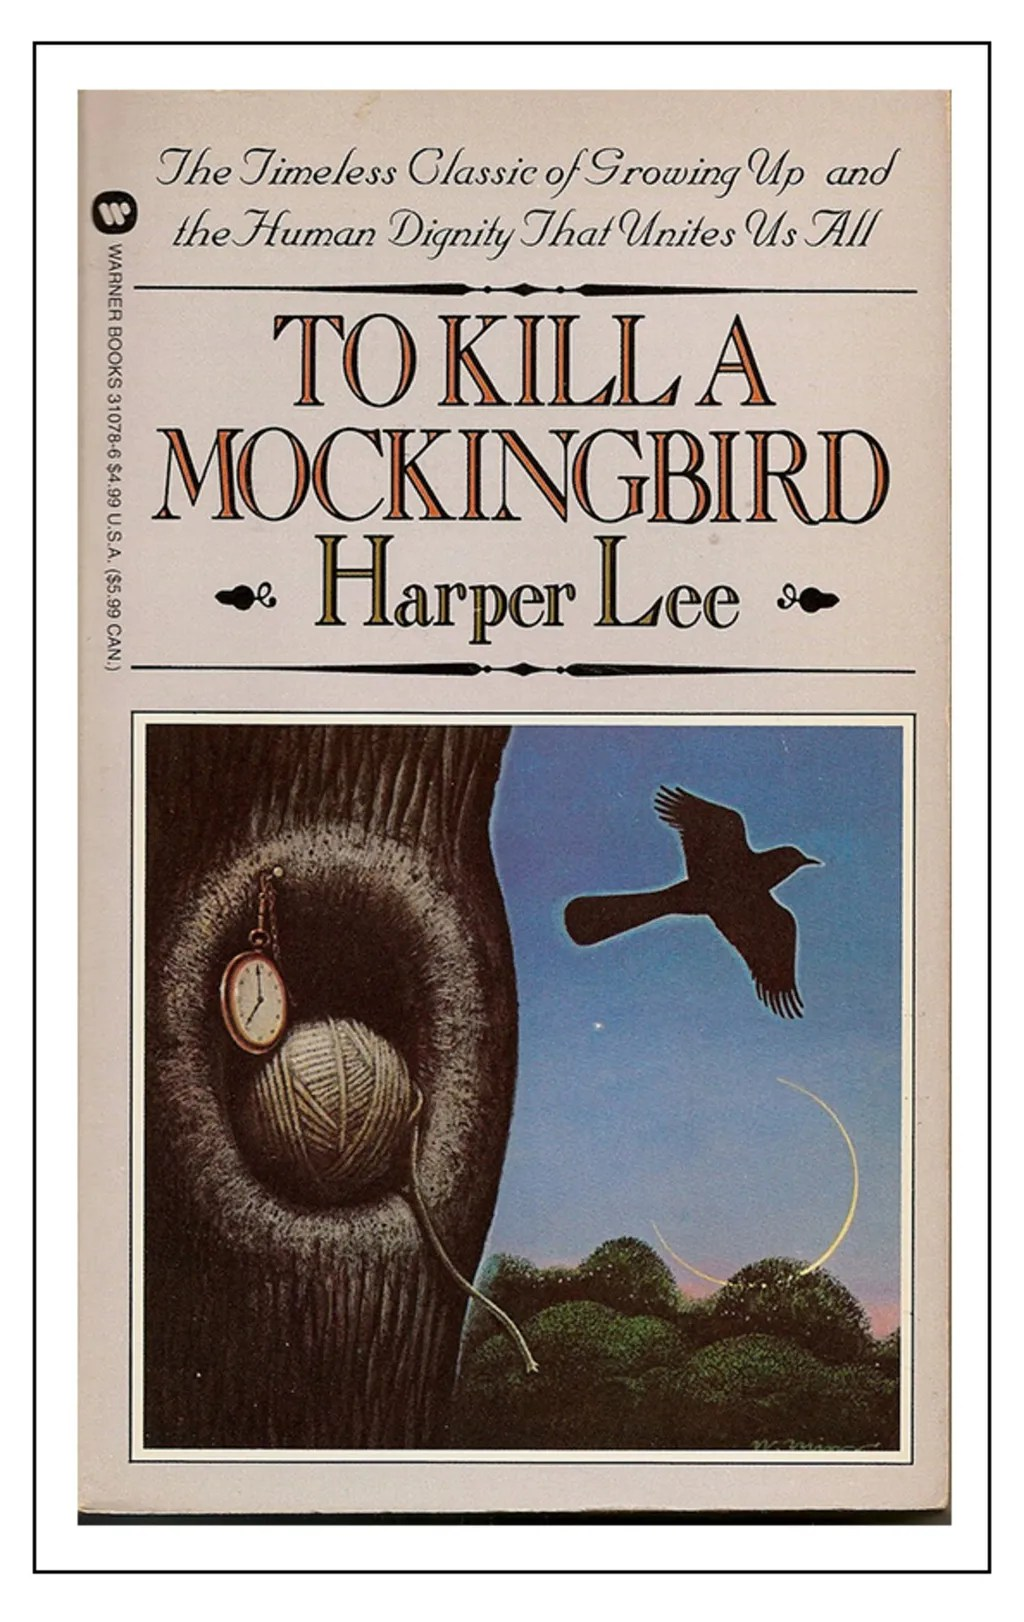 Big W Book Covers 11 To Kill A Mockingbird Book Covers We 39ll Always Remember